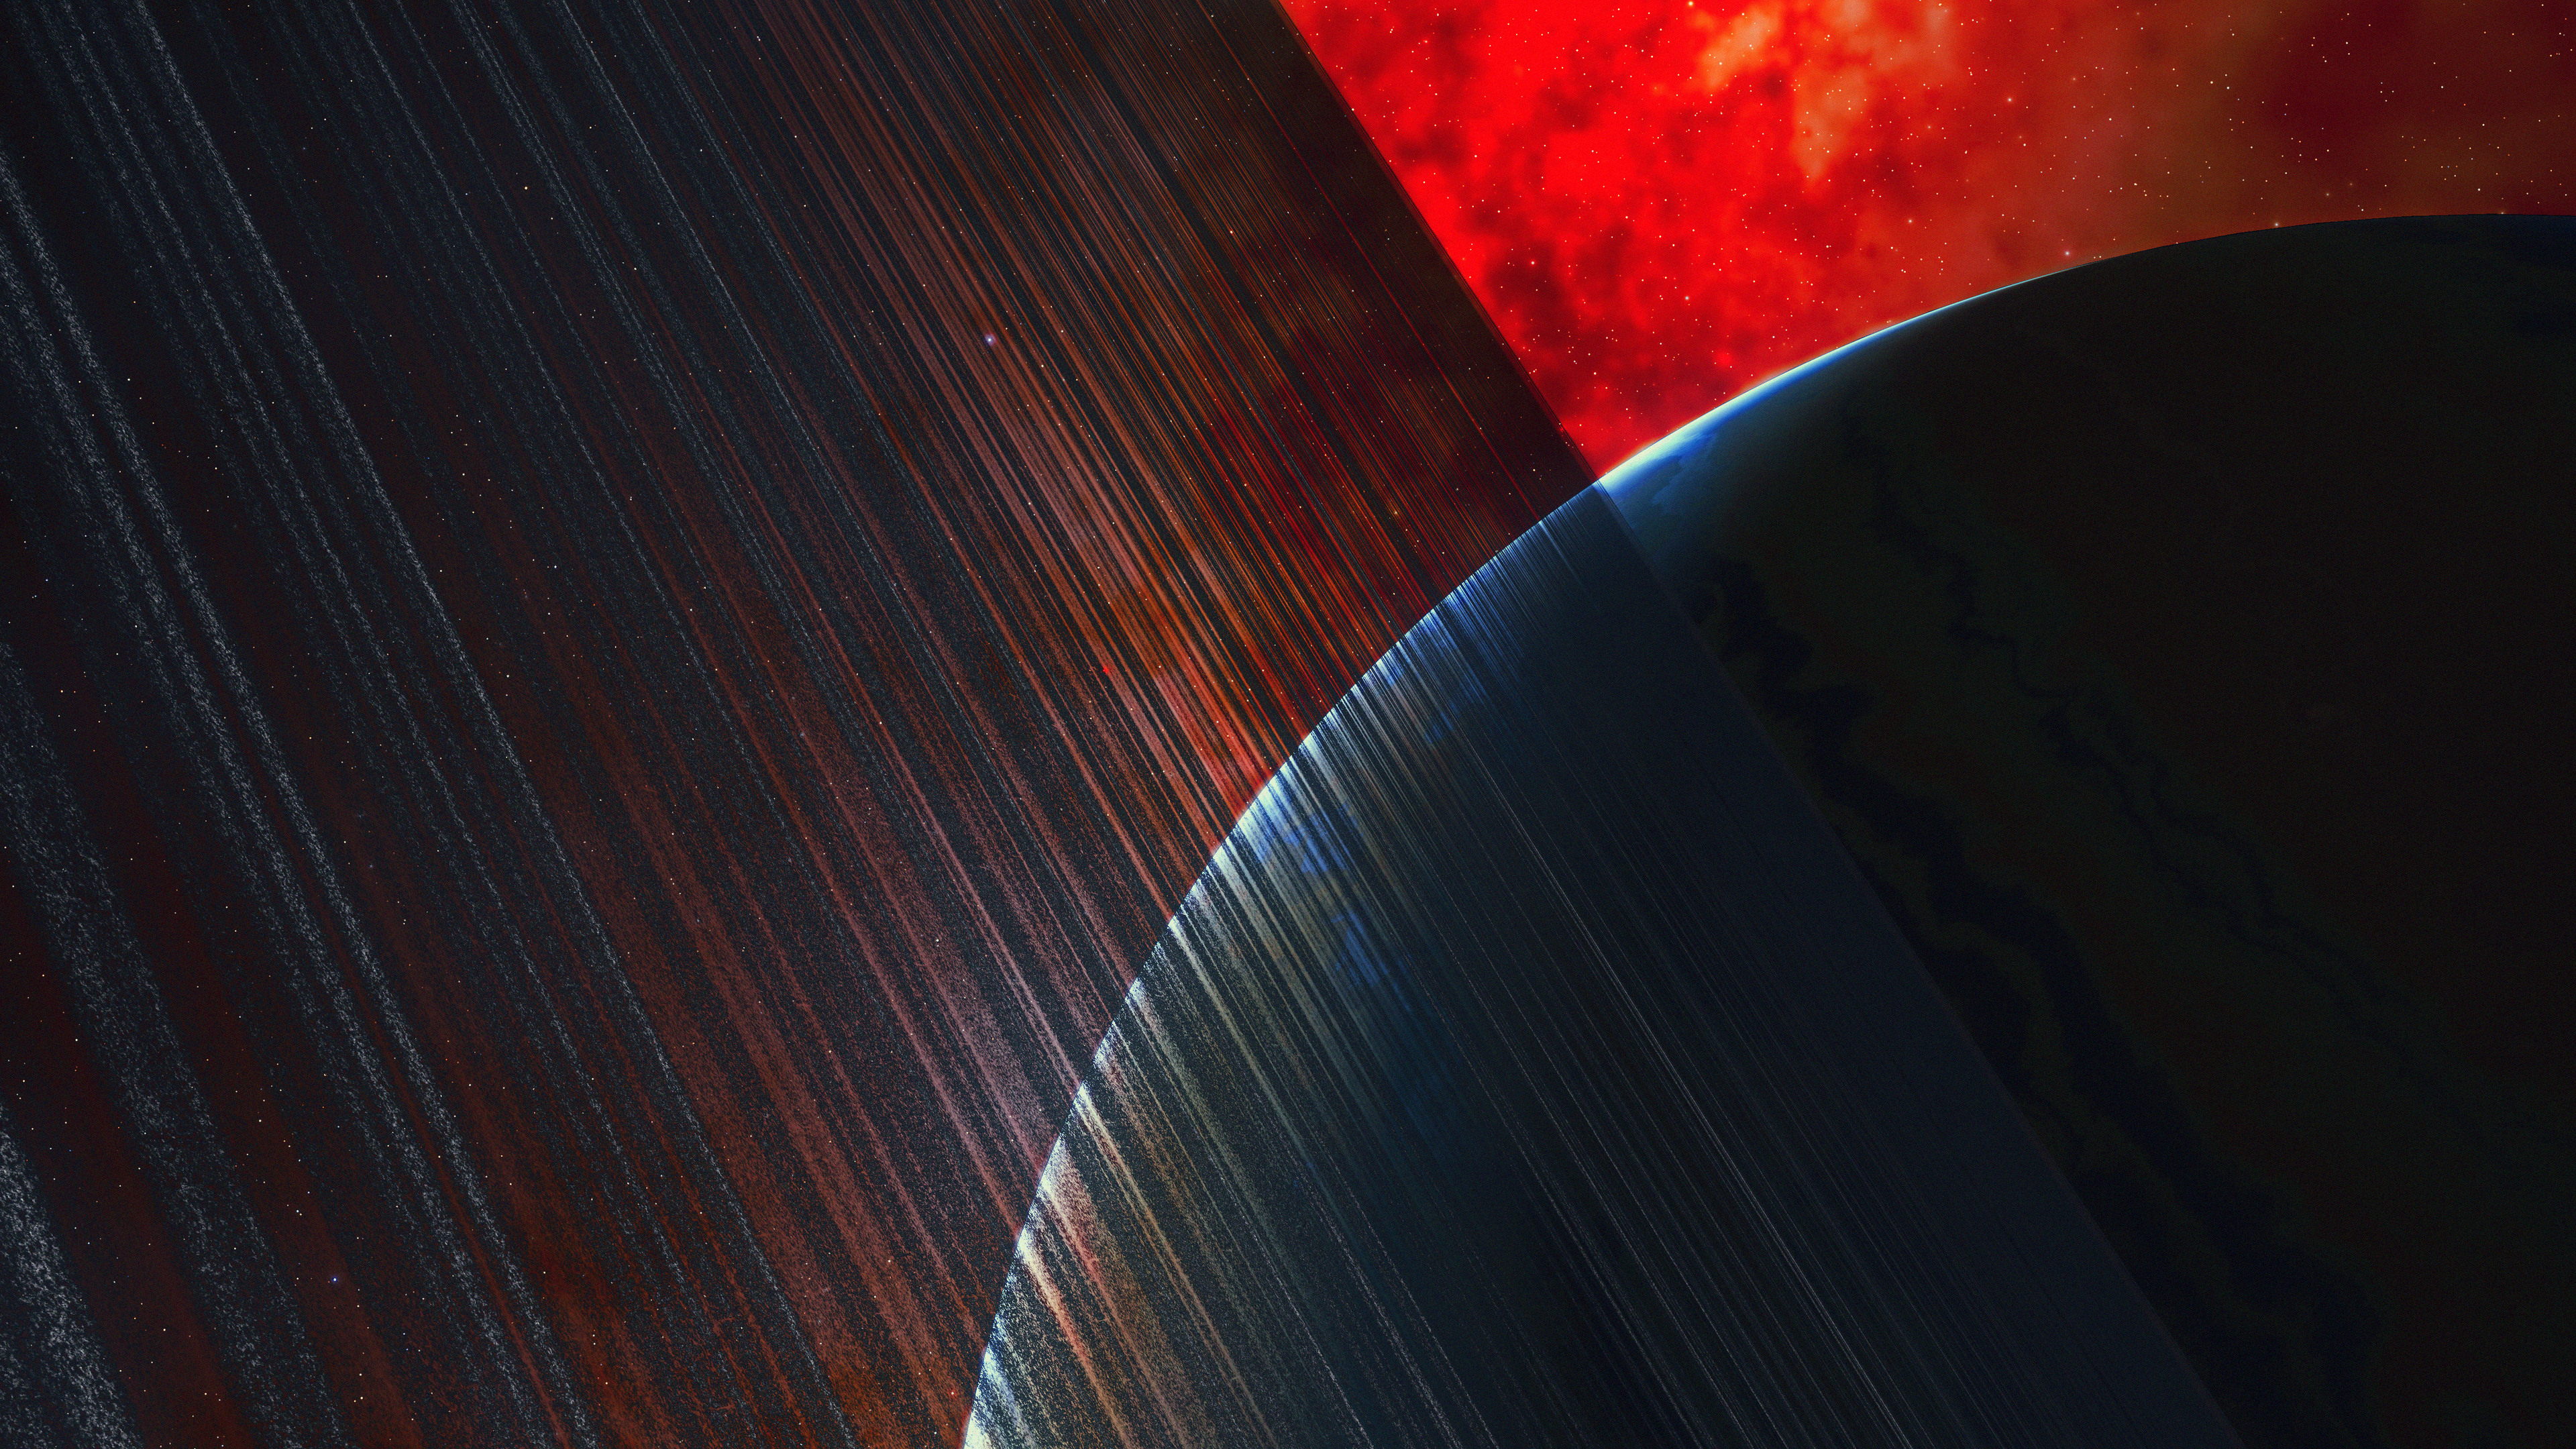 space engine abstract 4k 1553075324